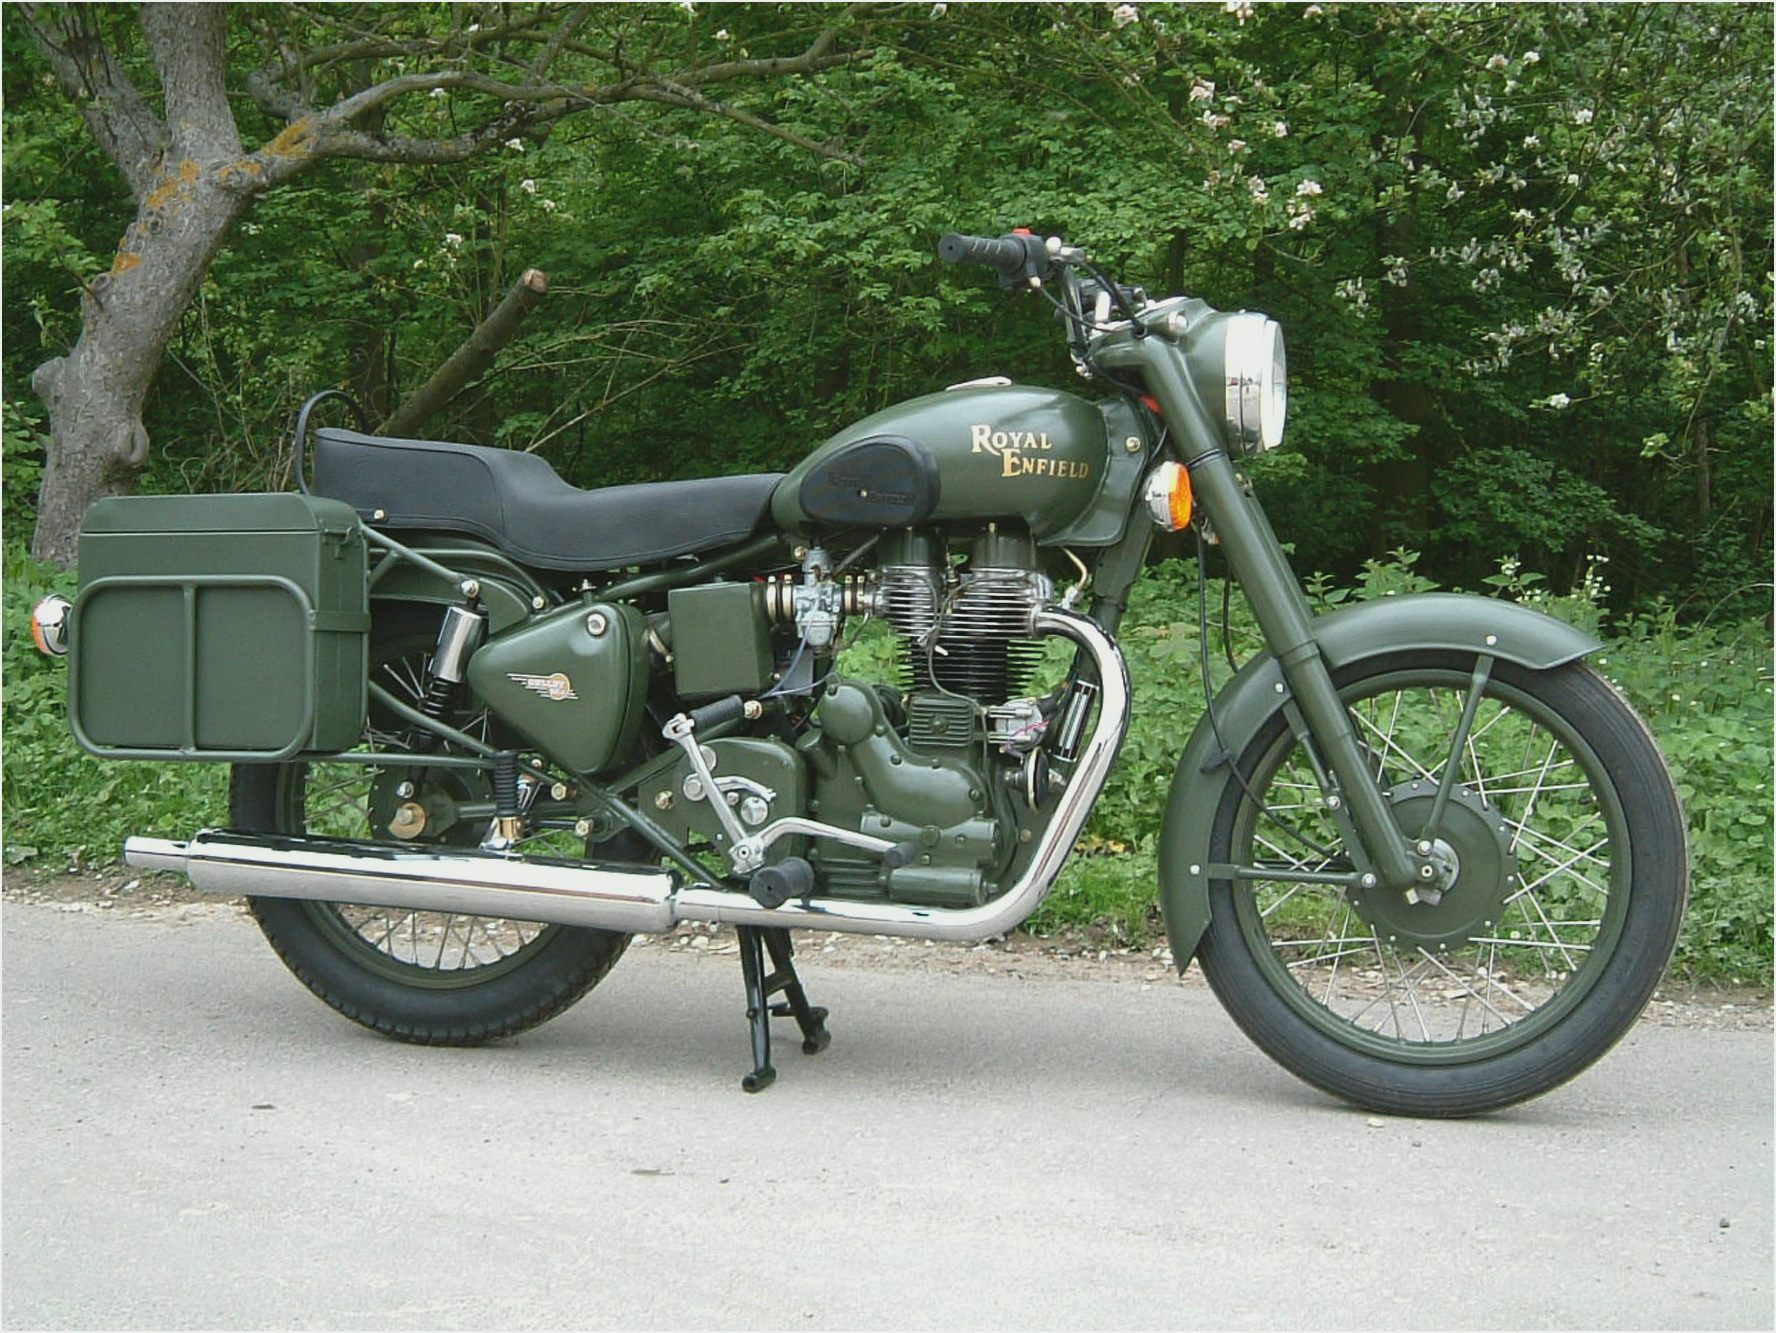 Royal Enfield Bullet 500 Army 2007 images #127481